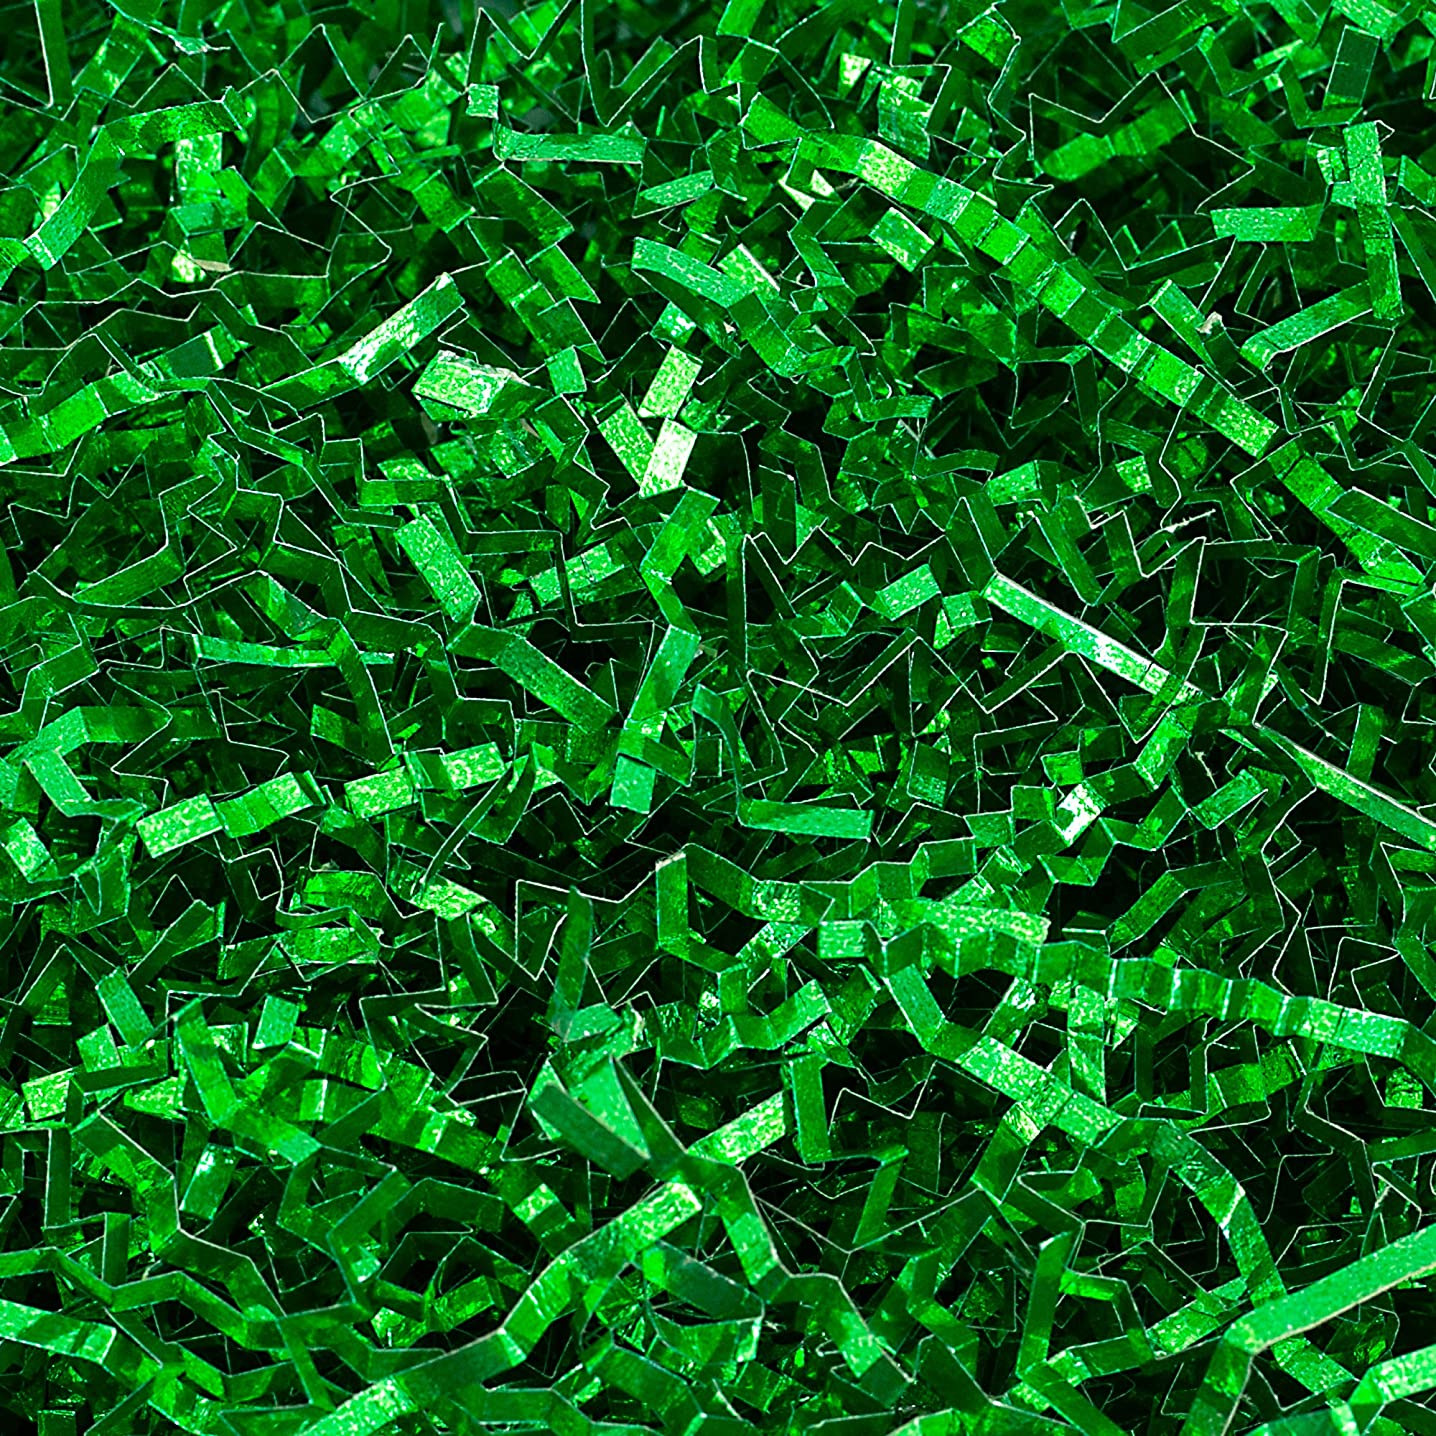 Crinkle Cut Paper Shred Filler (1/2 LB) for Gift Wrapping & Basket Filling - Green Metallic | MagicWater Supply